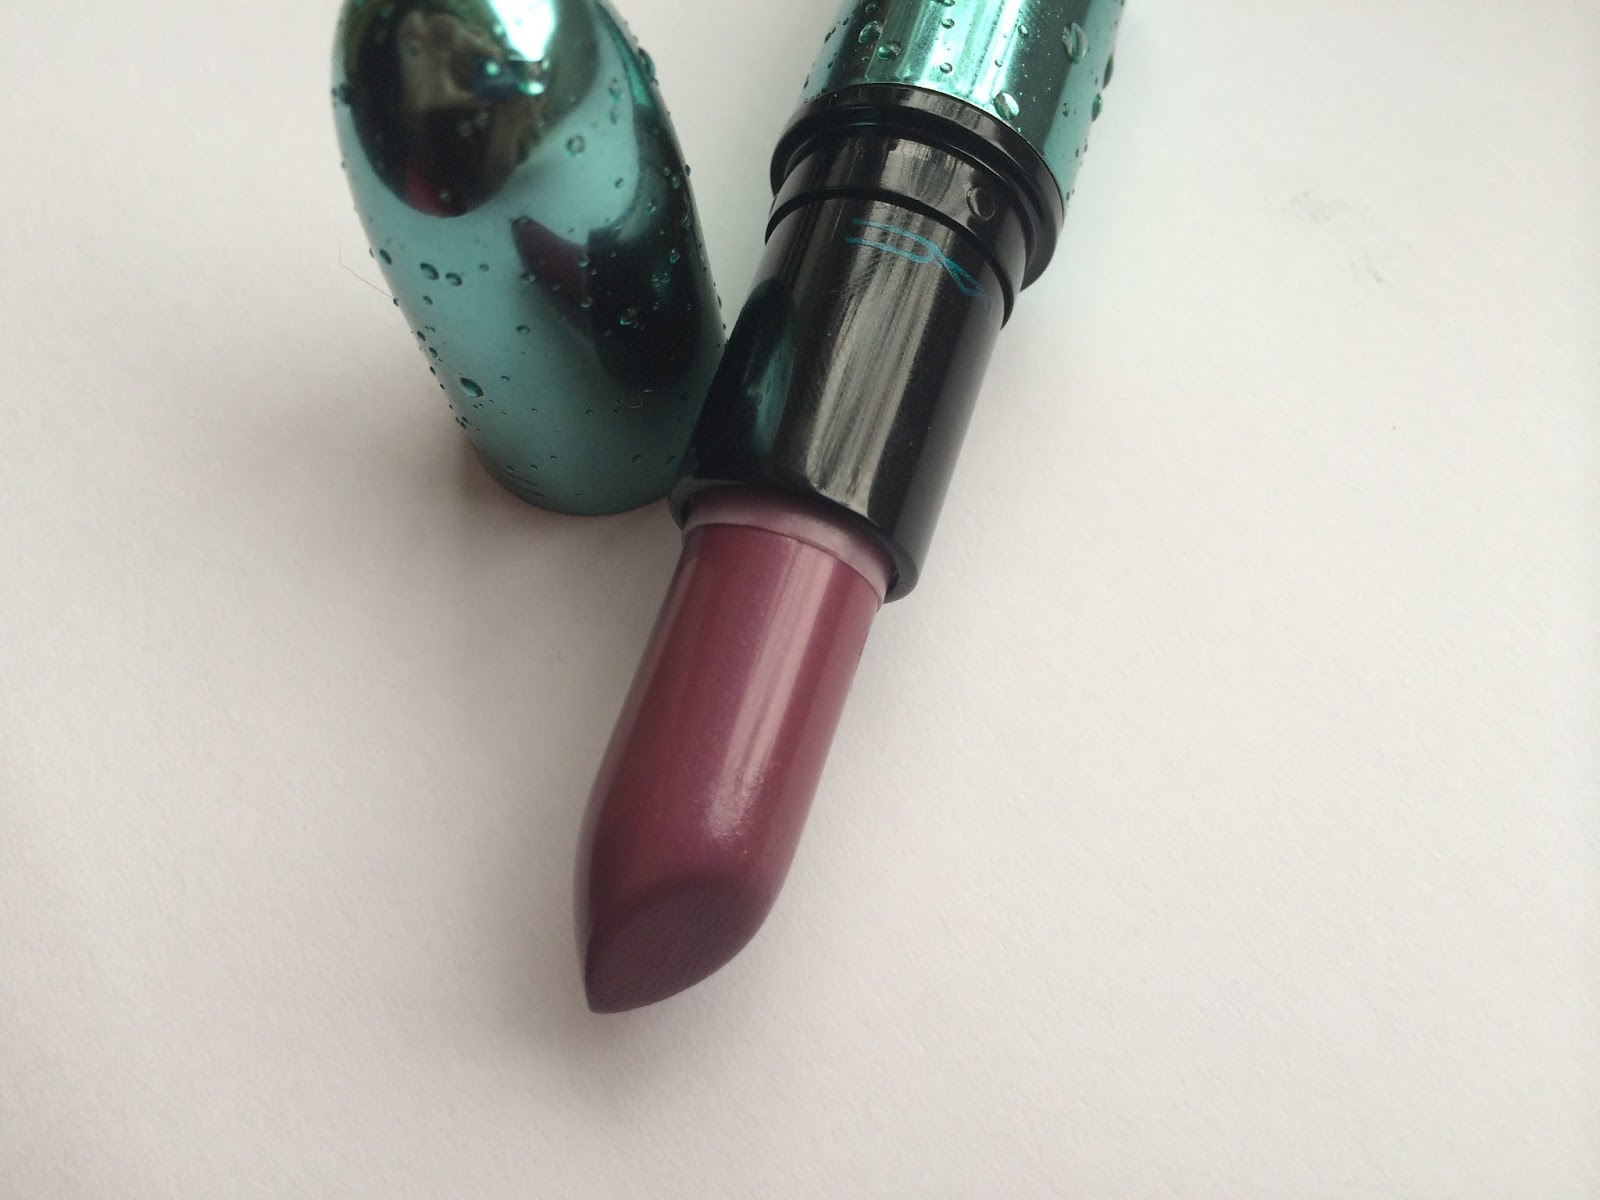 MAC Cosmetics Alluring Aquatic Goddess of the sea lipstick limited edition